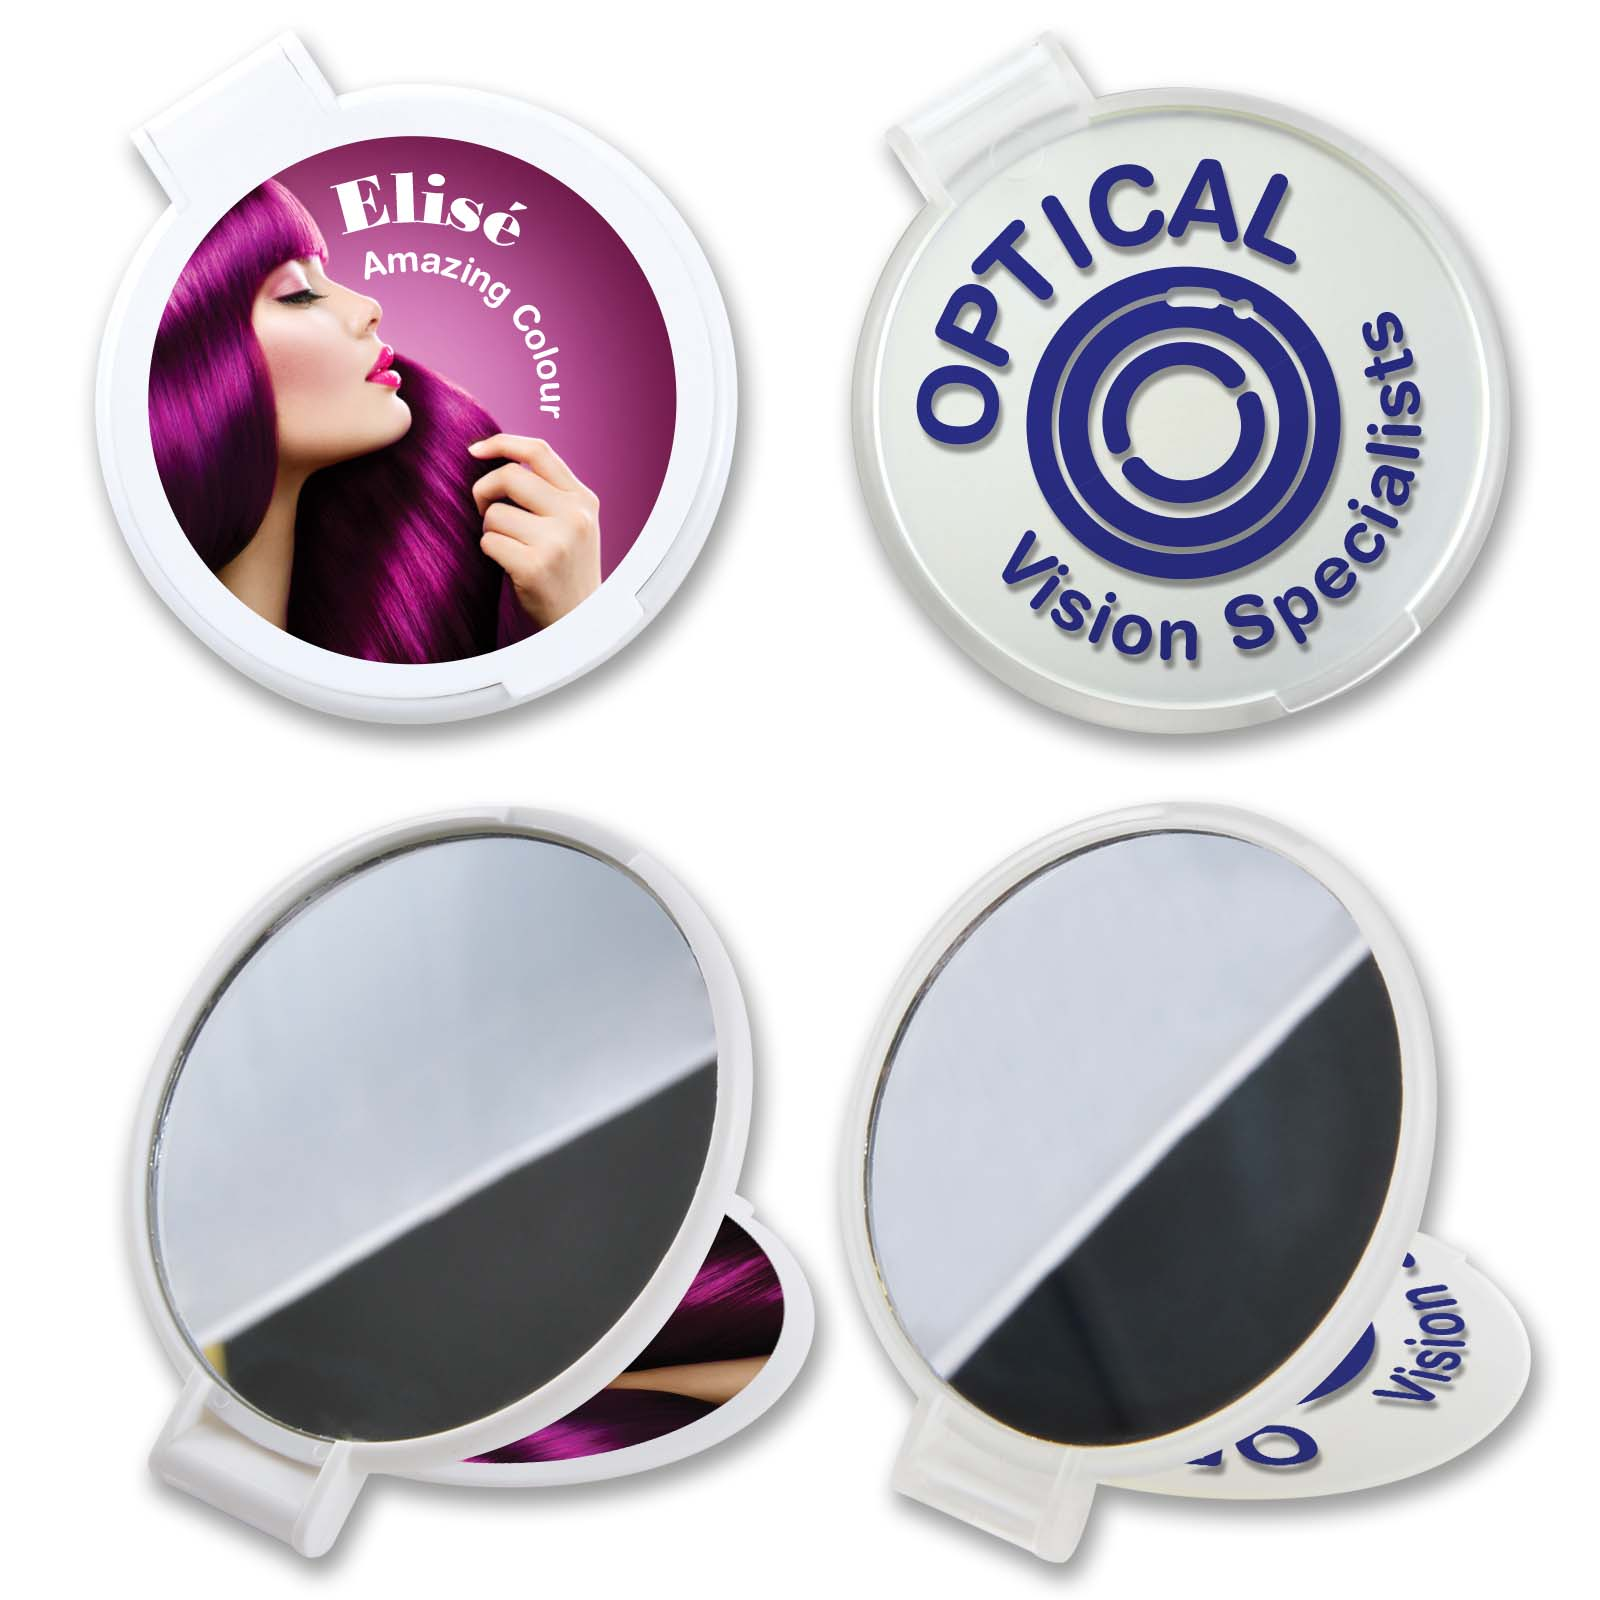 Reflections Round Folding Mirror - 1 Col 1 Pos Print